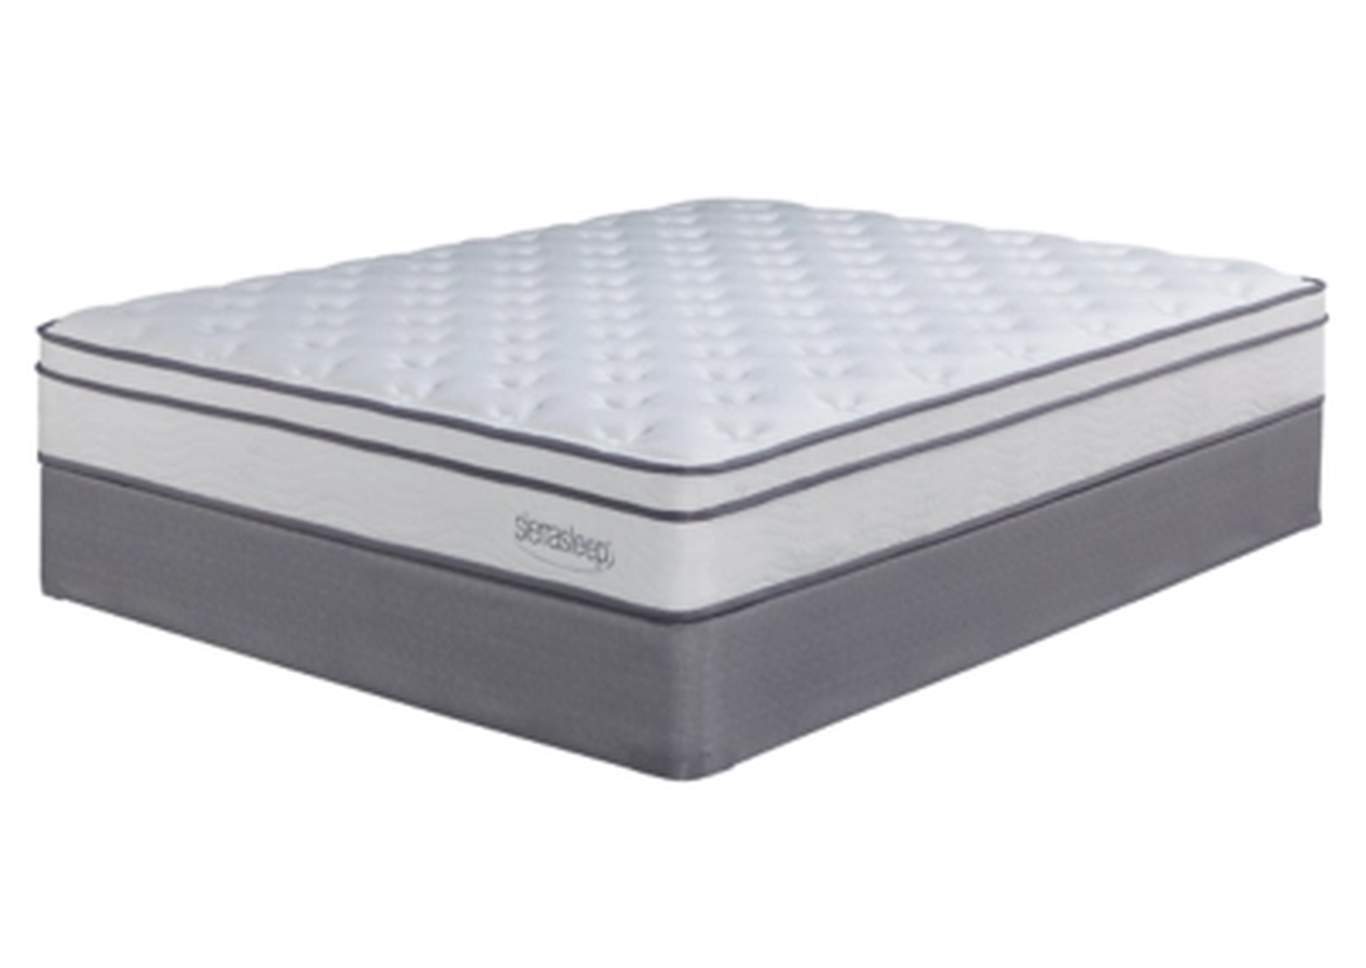 Longs Peak Limited White Queen Mattress,Sierra Sleep by Ashley